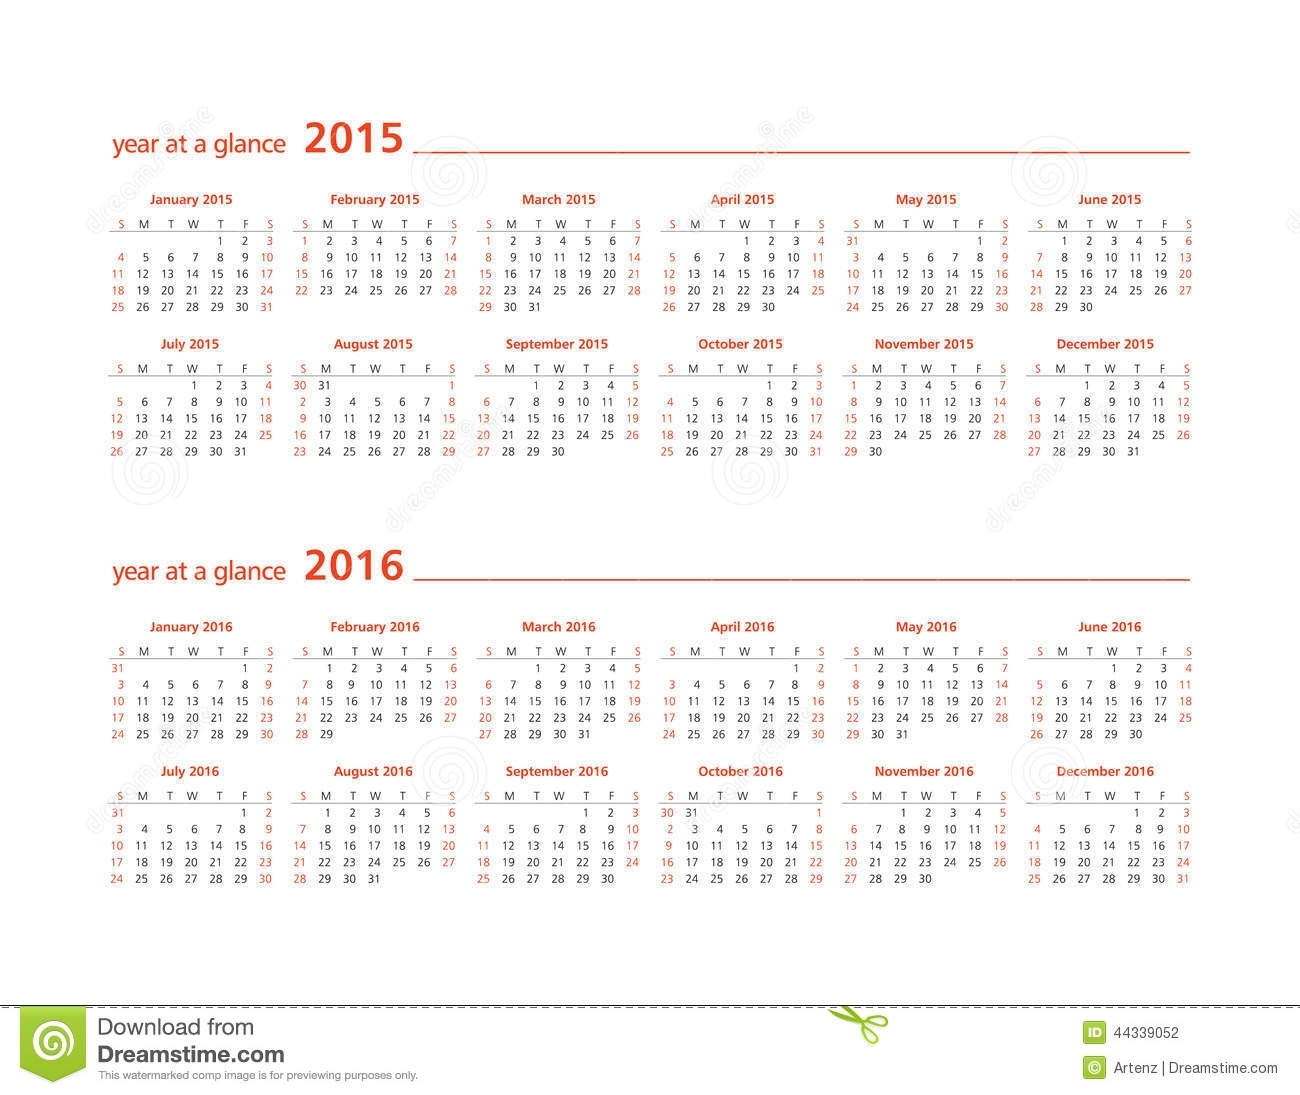 2015 And 2016 Year At A Glance Stock Illustration - Illustration Of for Calendar Year At A Glance